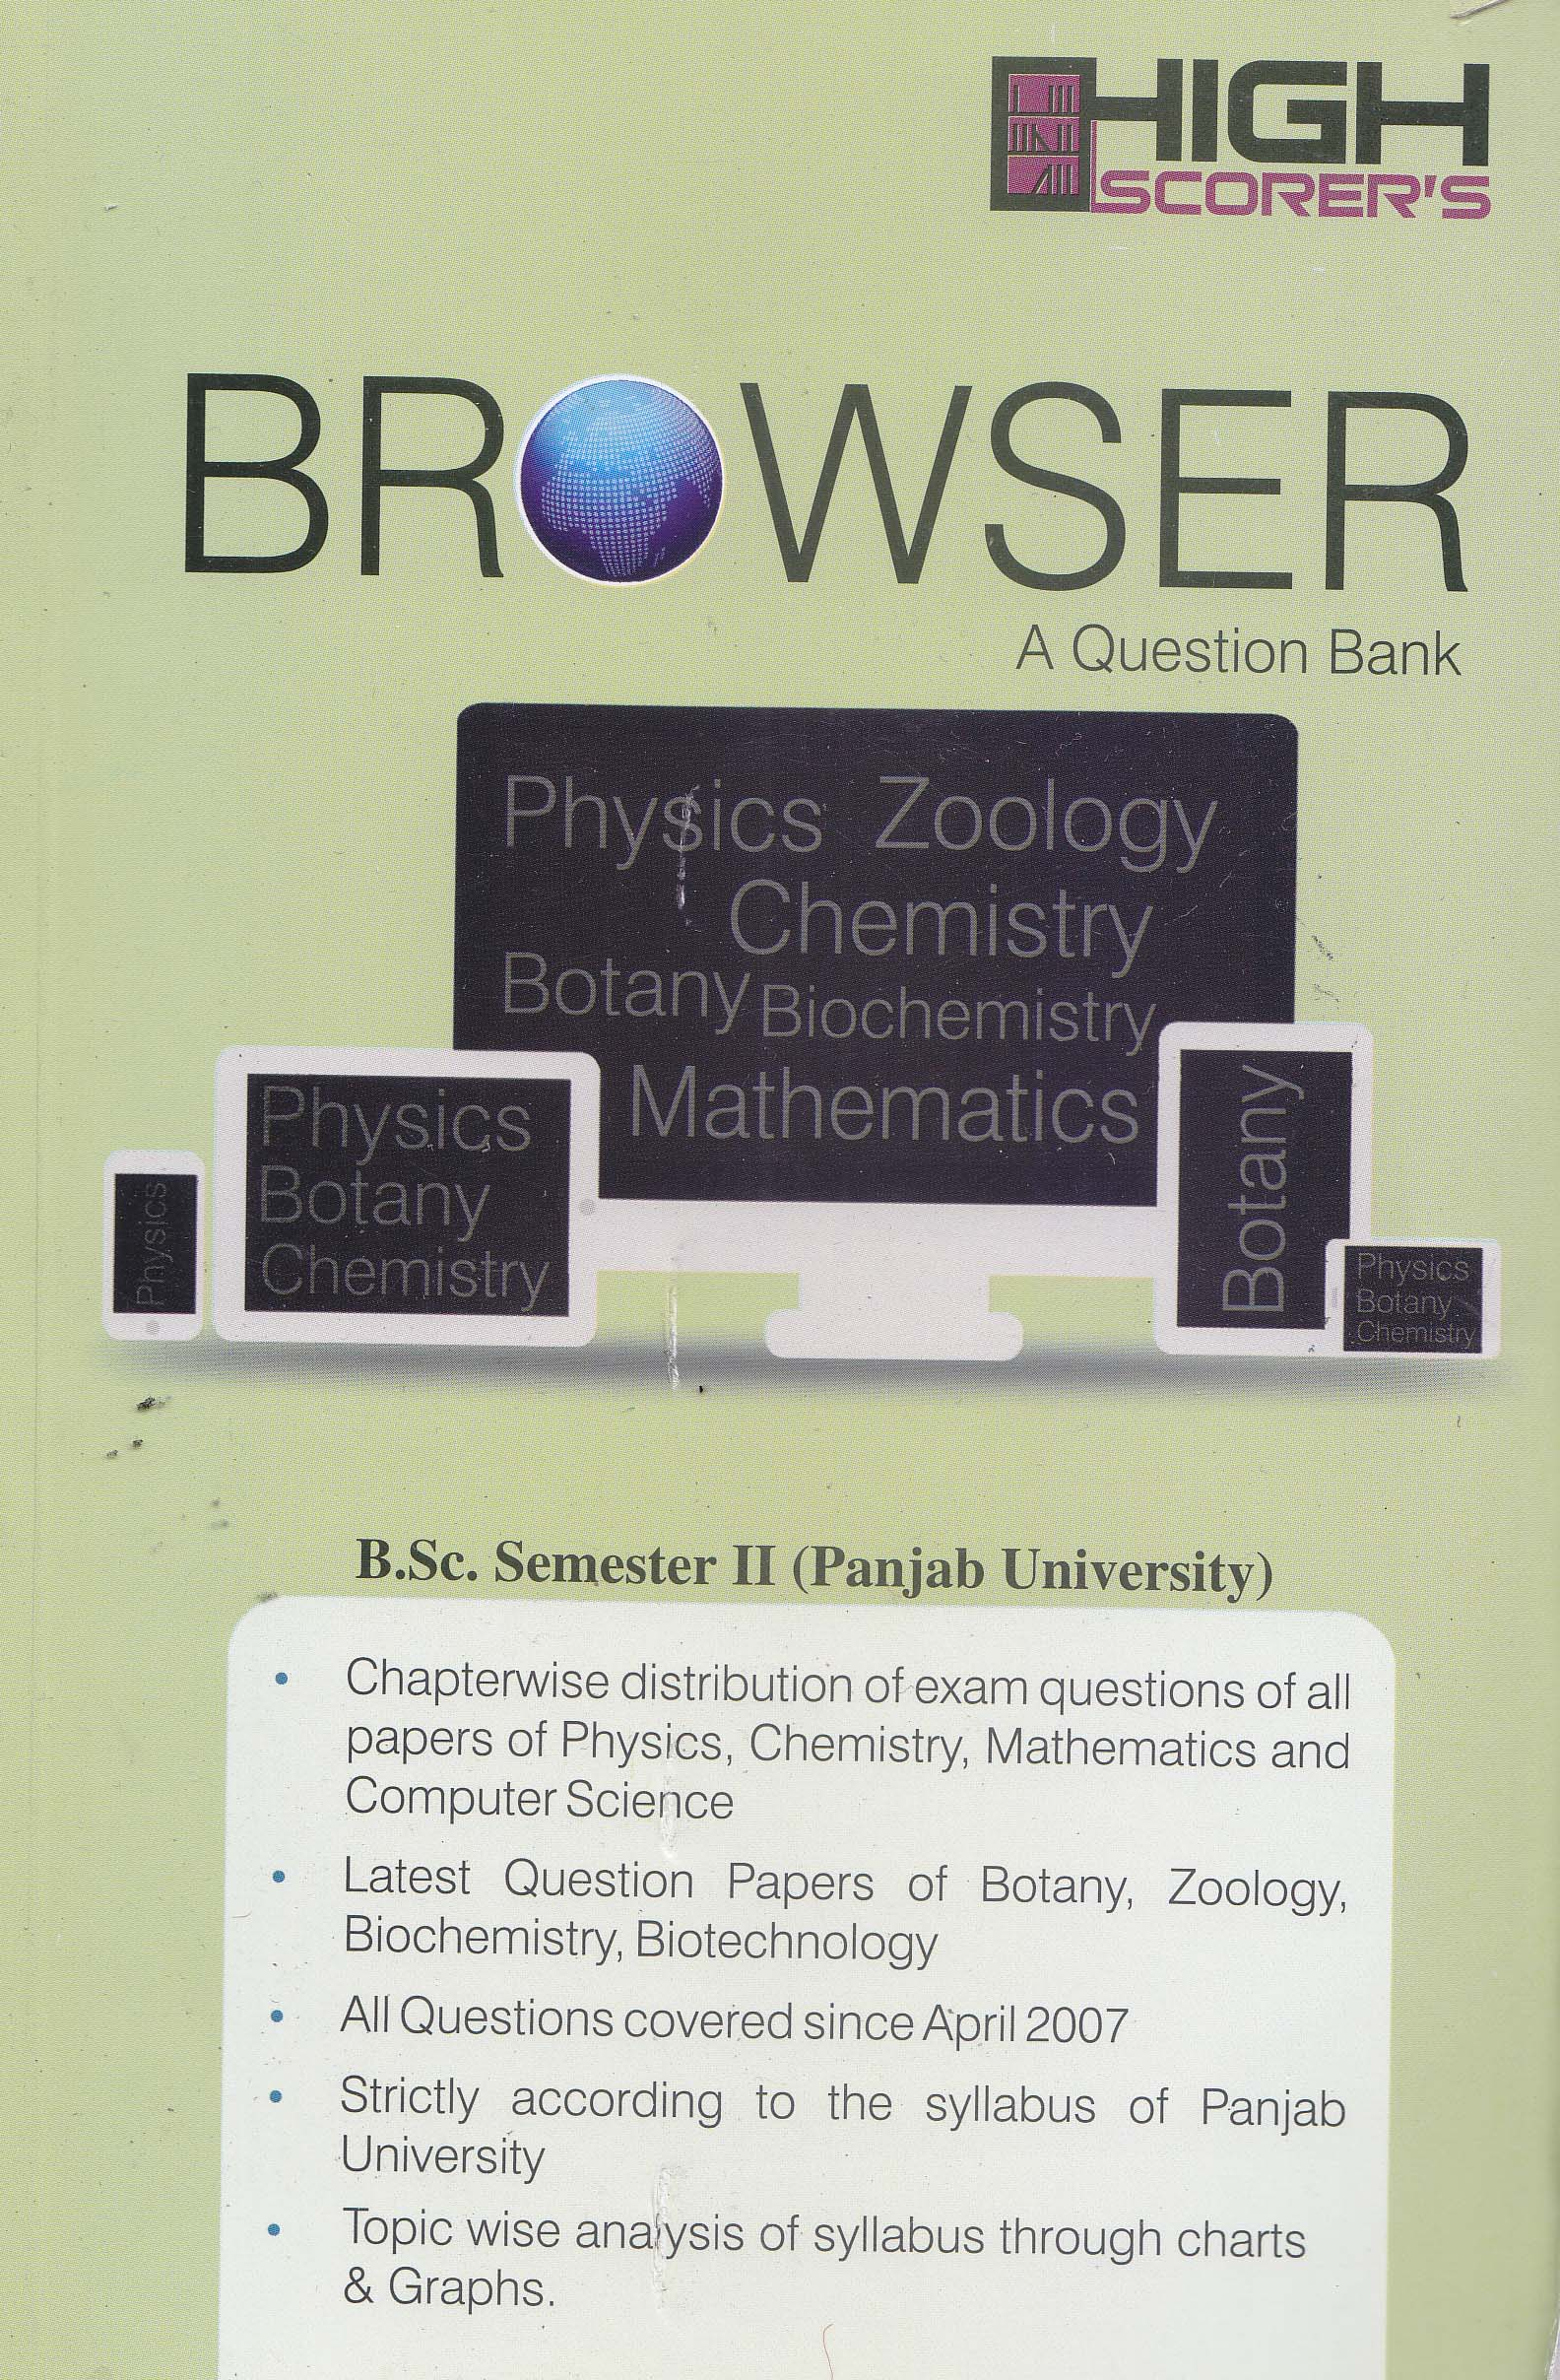 High Scorer's Browser (A Question Bank) for B.Sc. Semester-II (Mohindra Publishing House) Edition 2018 Punjab University